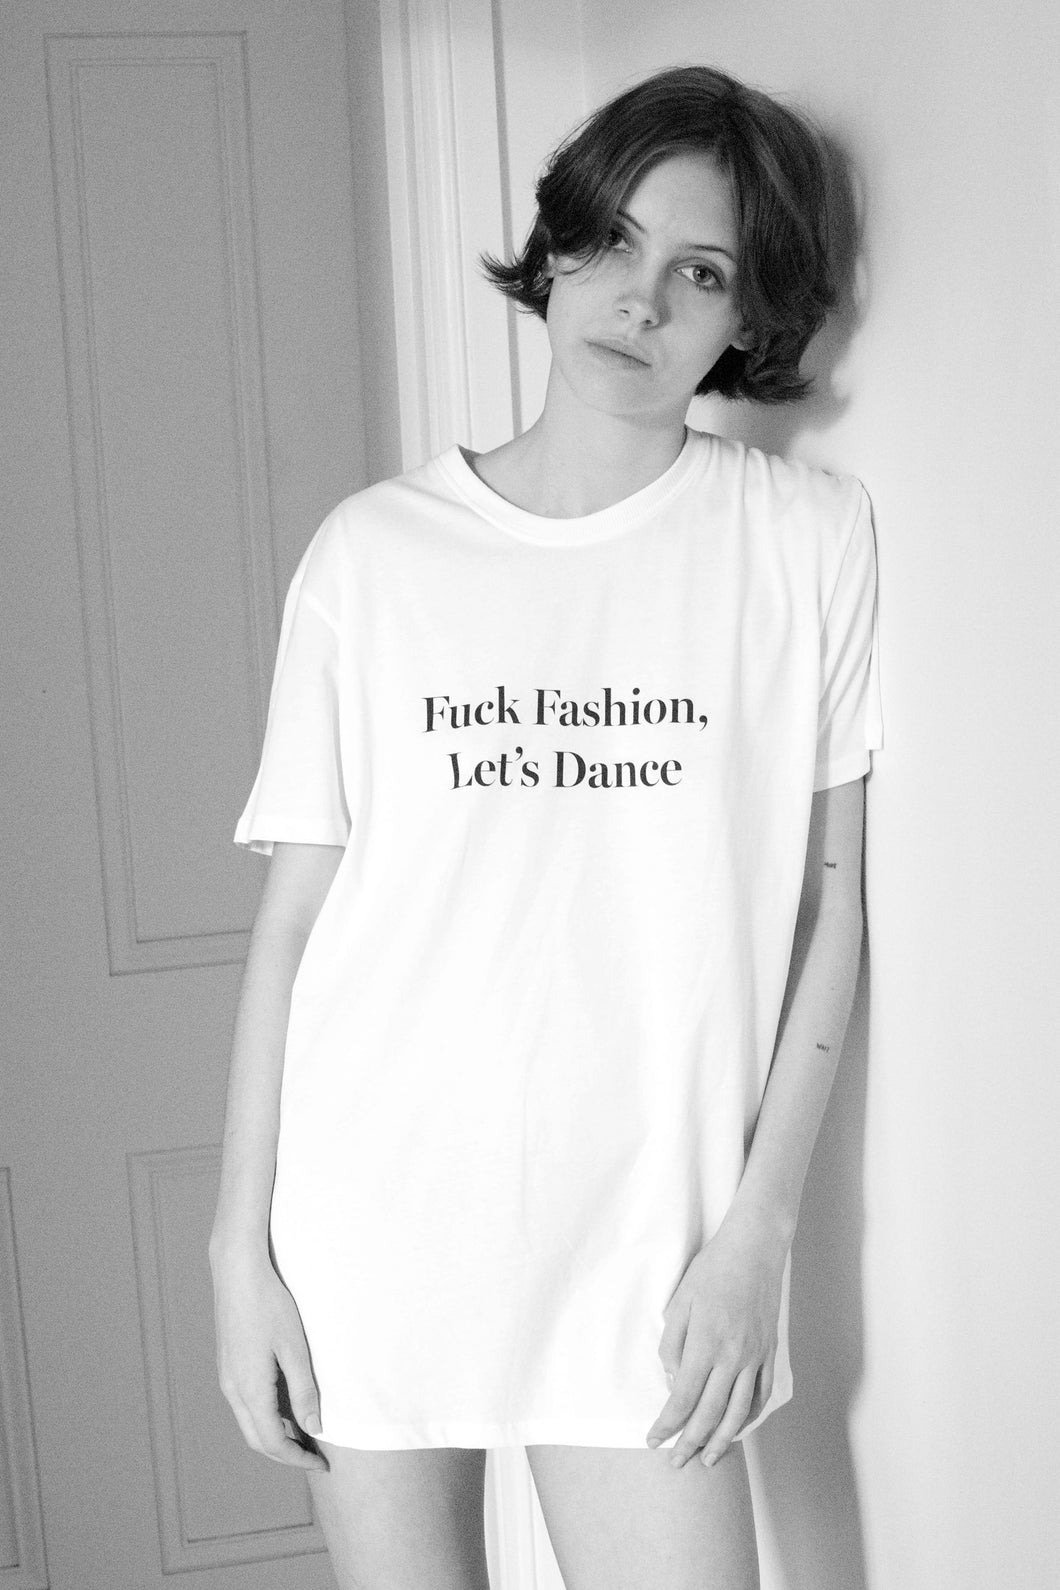 RUSSH x Nathan Smith Fuck Fashion, Let's Dance tee